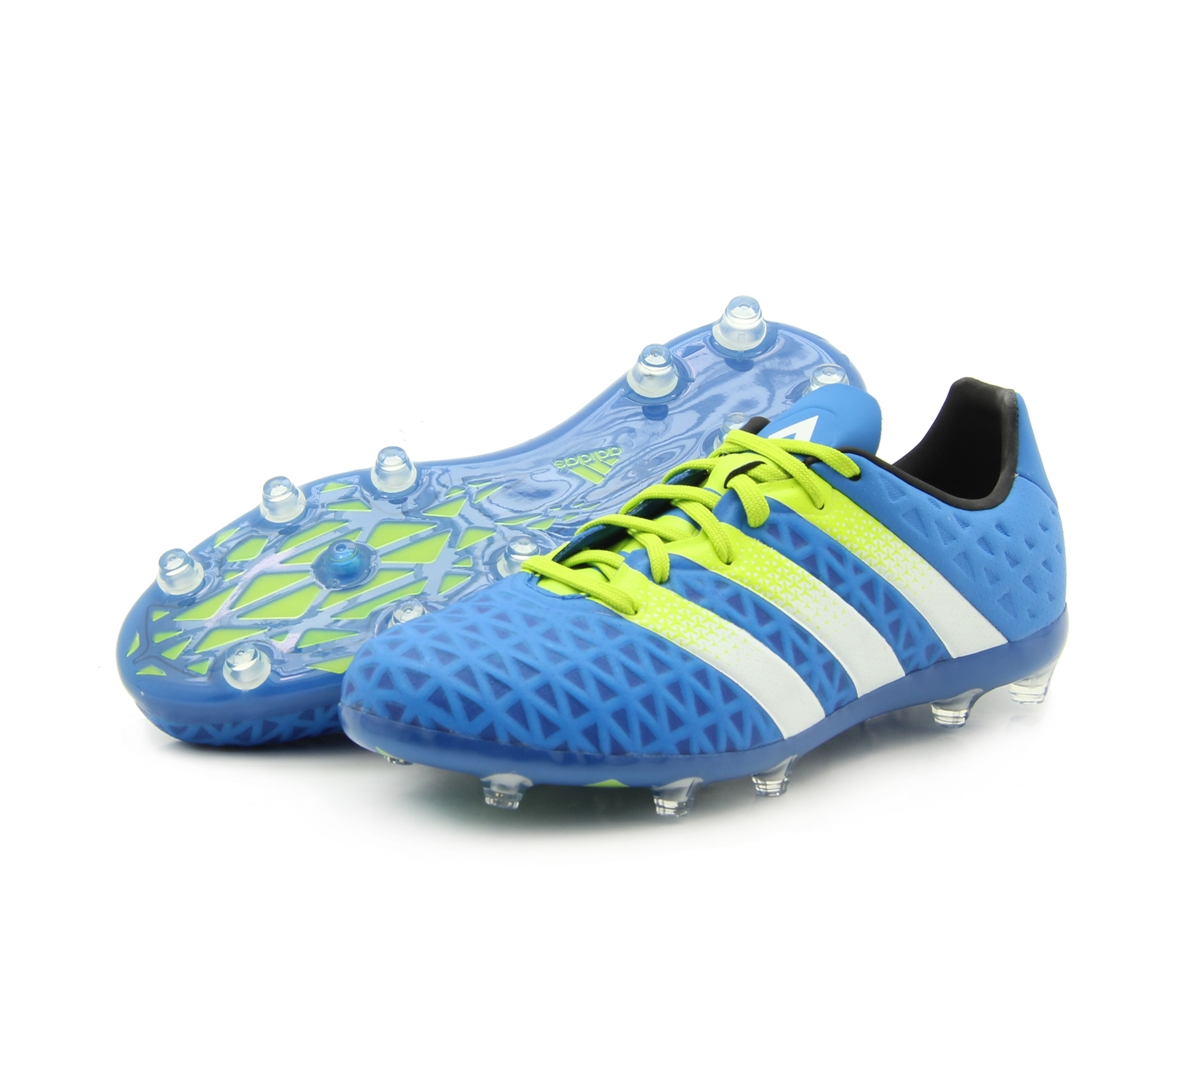 632e92c0be3a Adidas ACE 16.1 Youth FG AG Soccer Cleats (Shock Blue White Solar ...